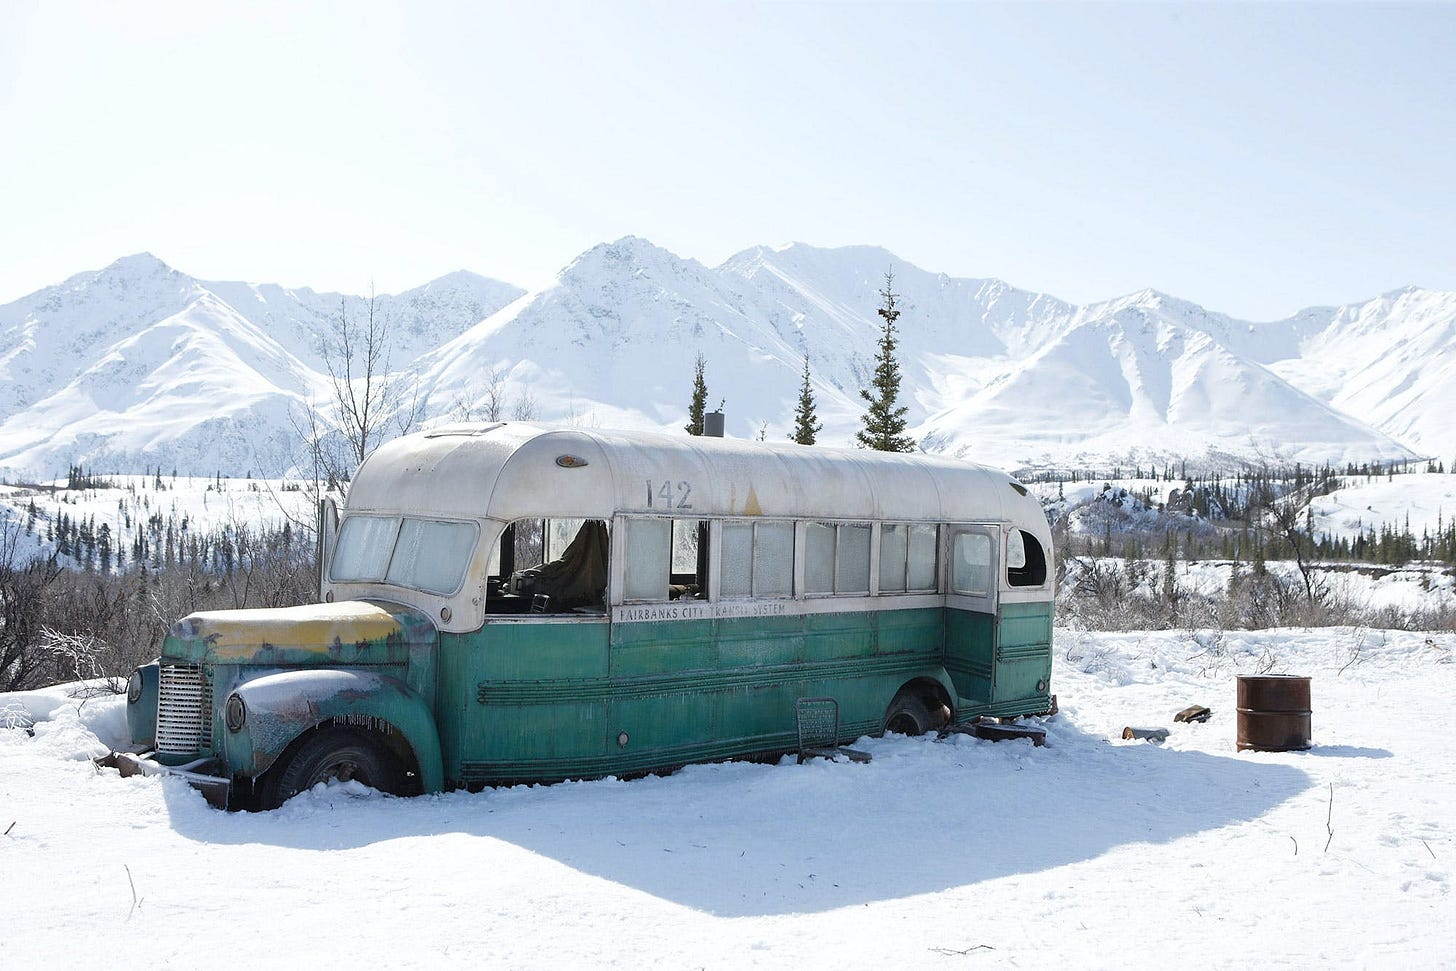 Abandoned bus in the snowy mountain